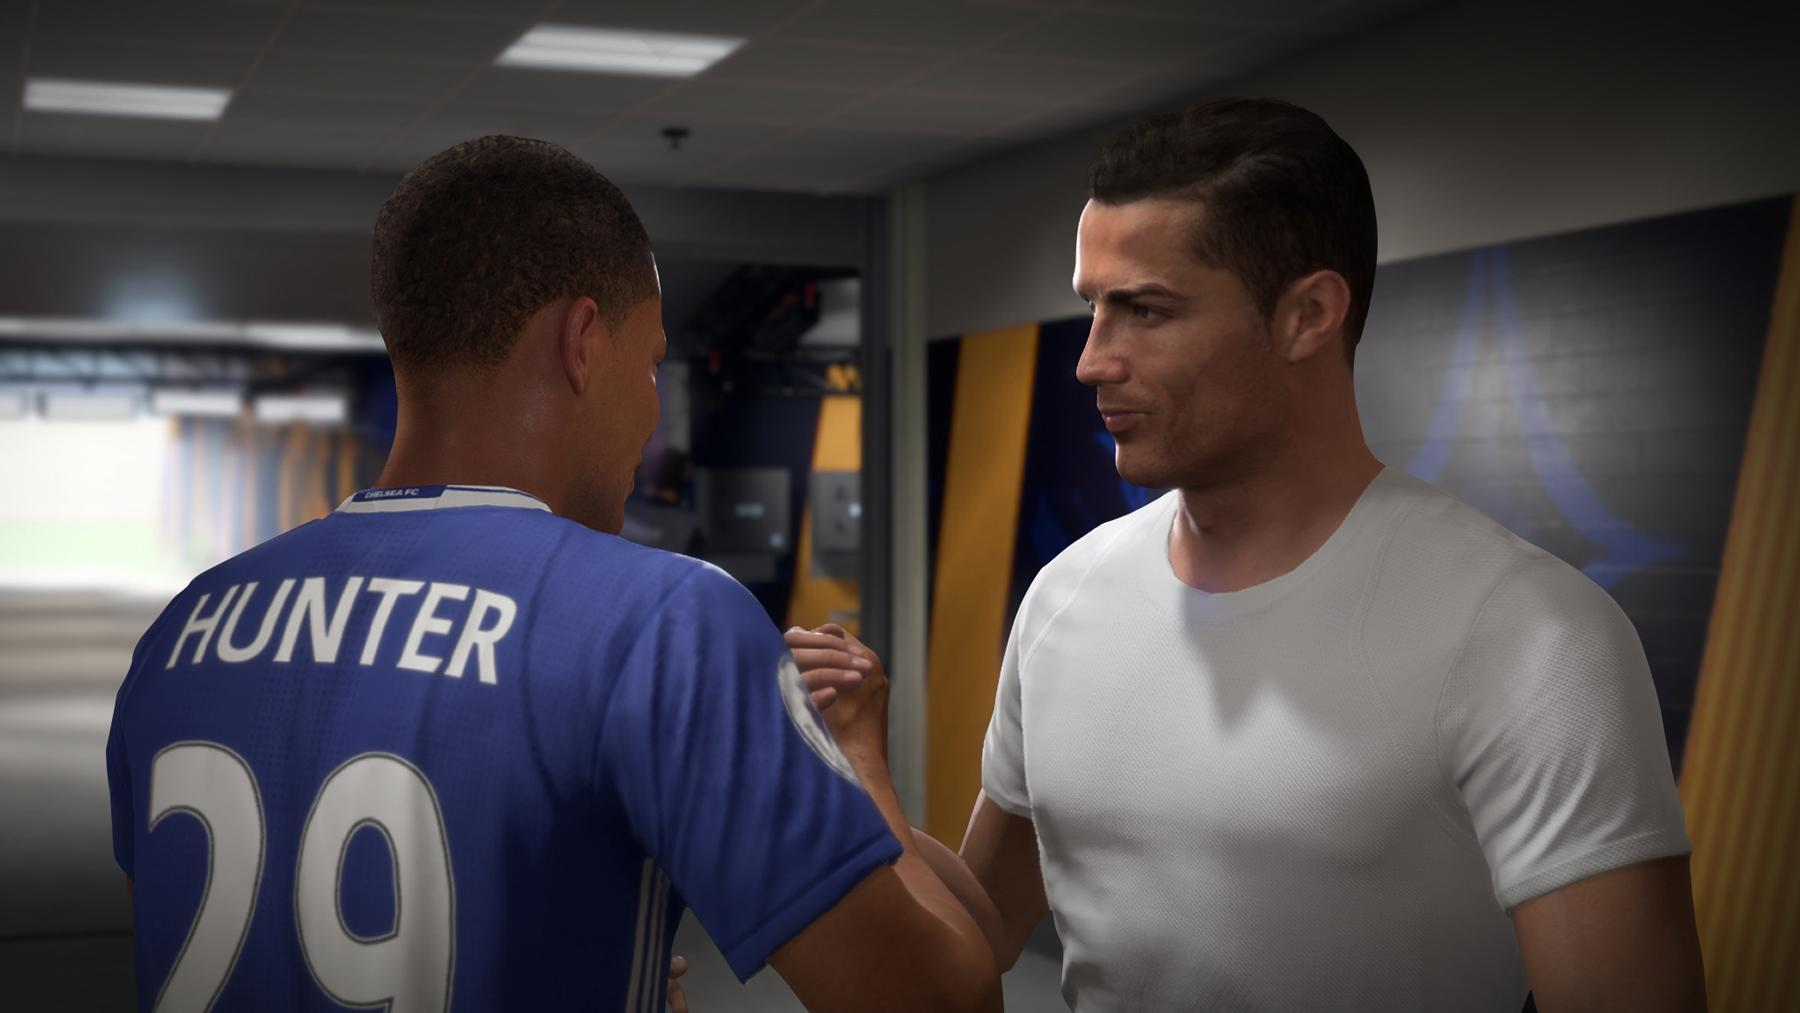 The new story mode in 'FIFA 18' is all about choice